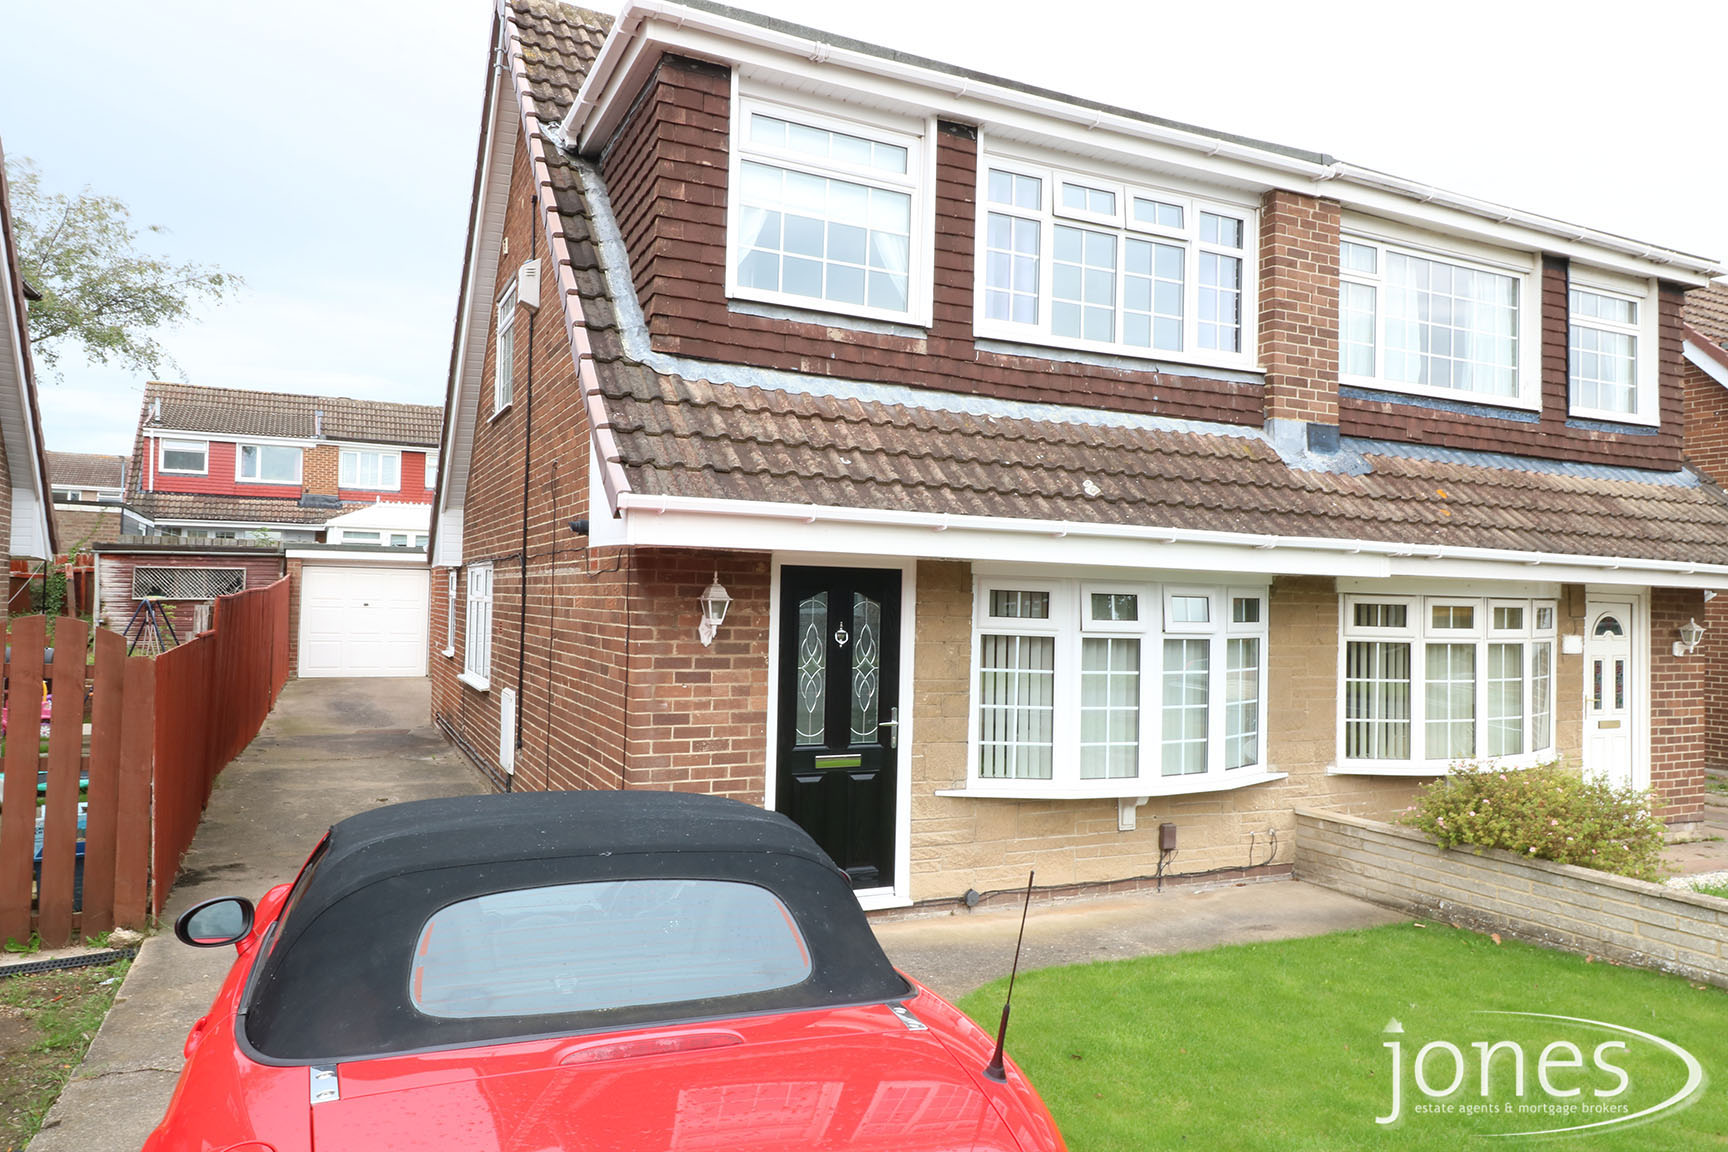 Home for Sale Let - Photo 01 Surbiton Road, Fairfield, Stockton on Tees, TS19 7SA